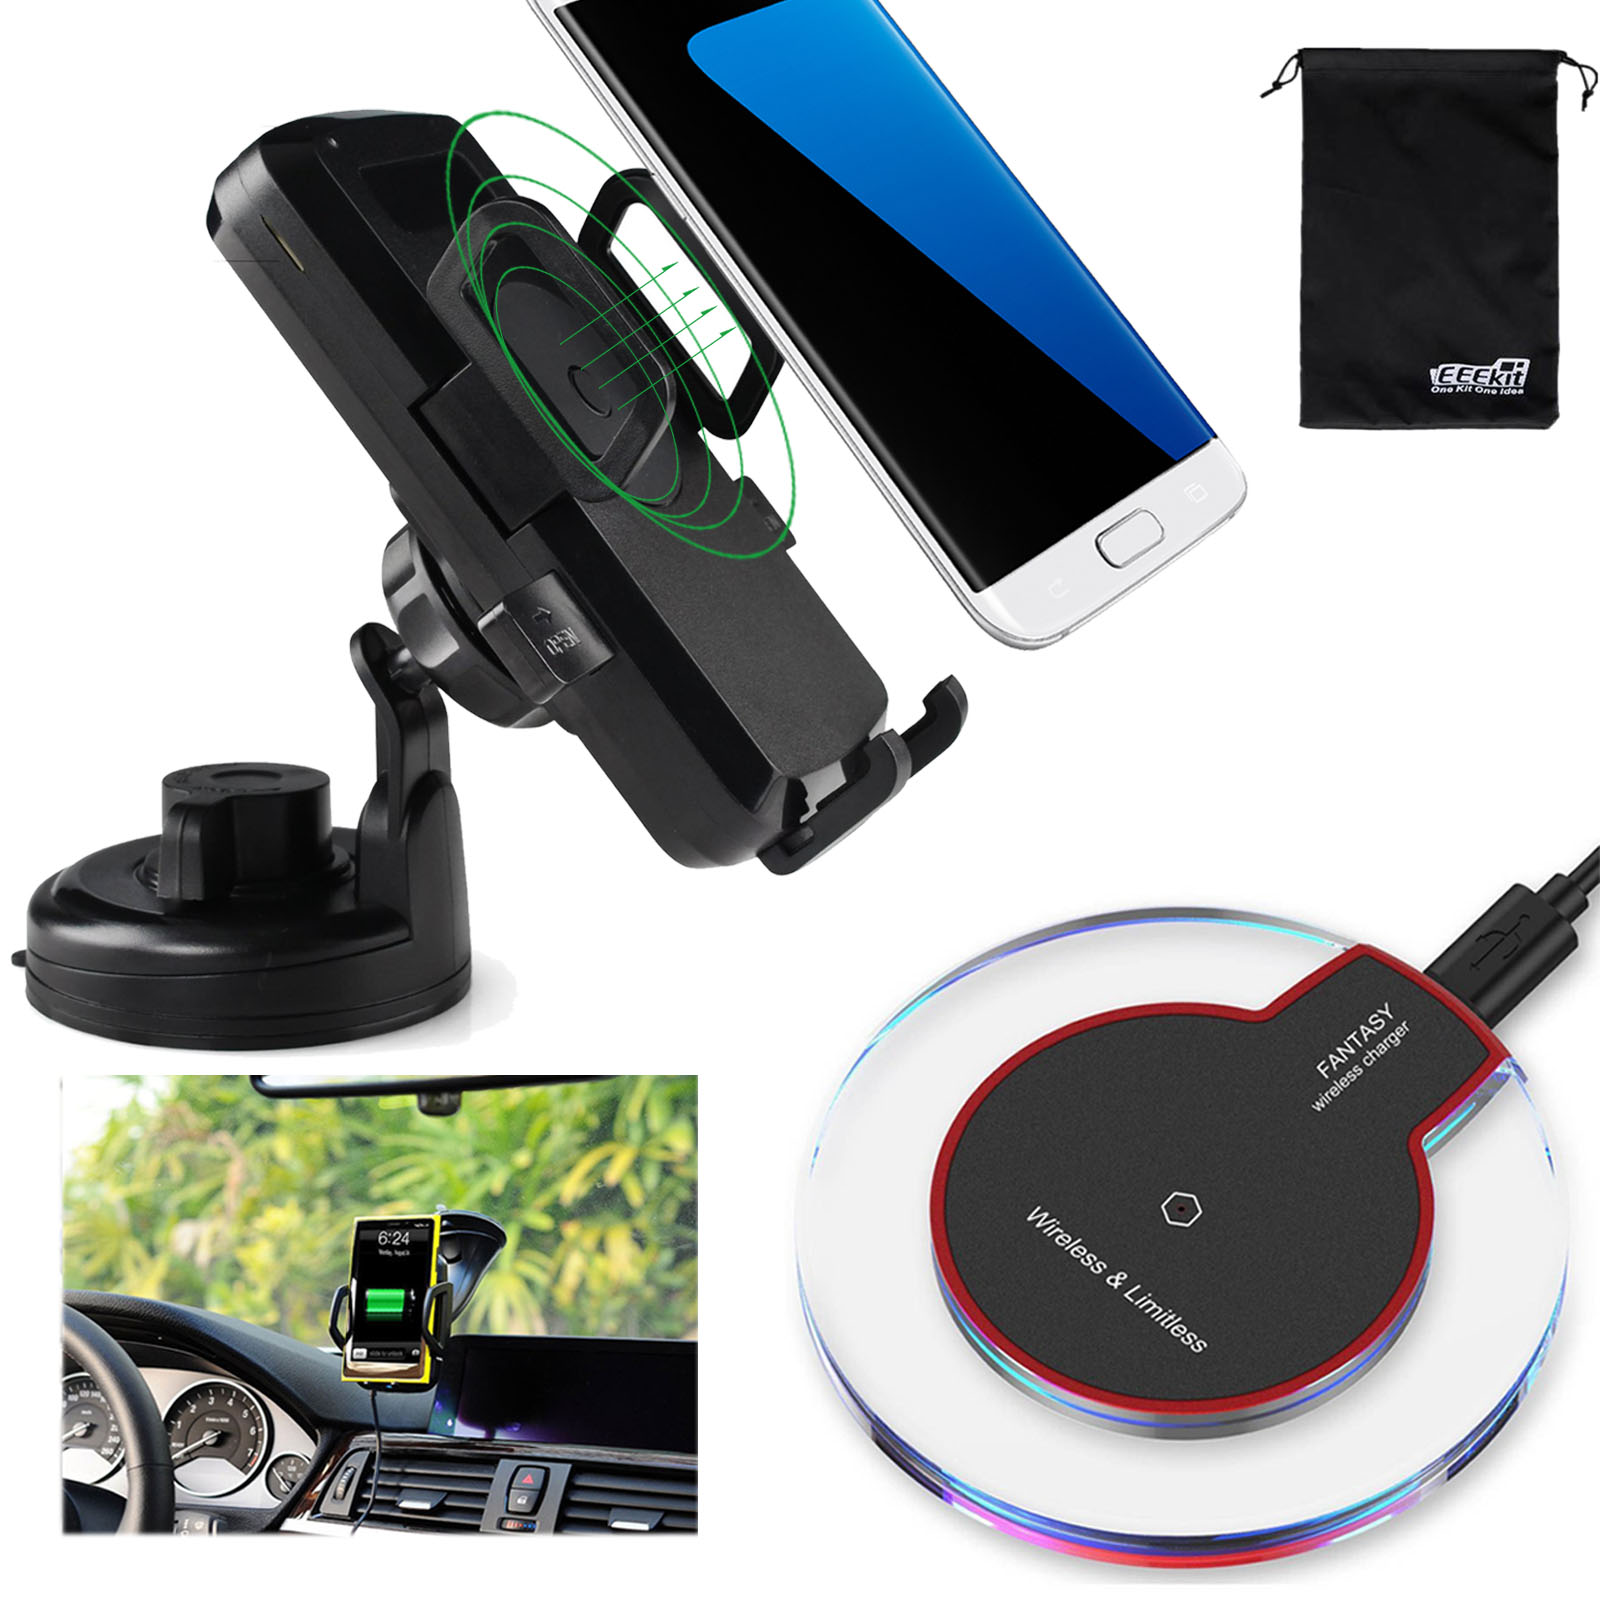 Qi Wireless Charging Car Mount+Wireless Charger Pad for Samsung Galaxy S9 S8 S7 S6  sc 1 st  Walmart & Qi Wireless Charging Car Mount+Wireless Charger Pad for Samsung ...